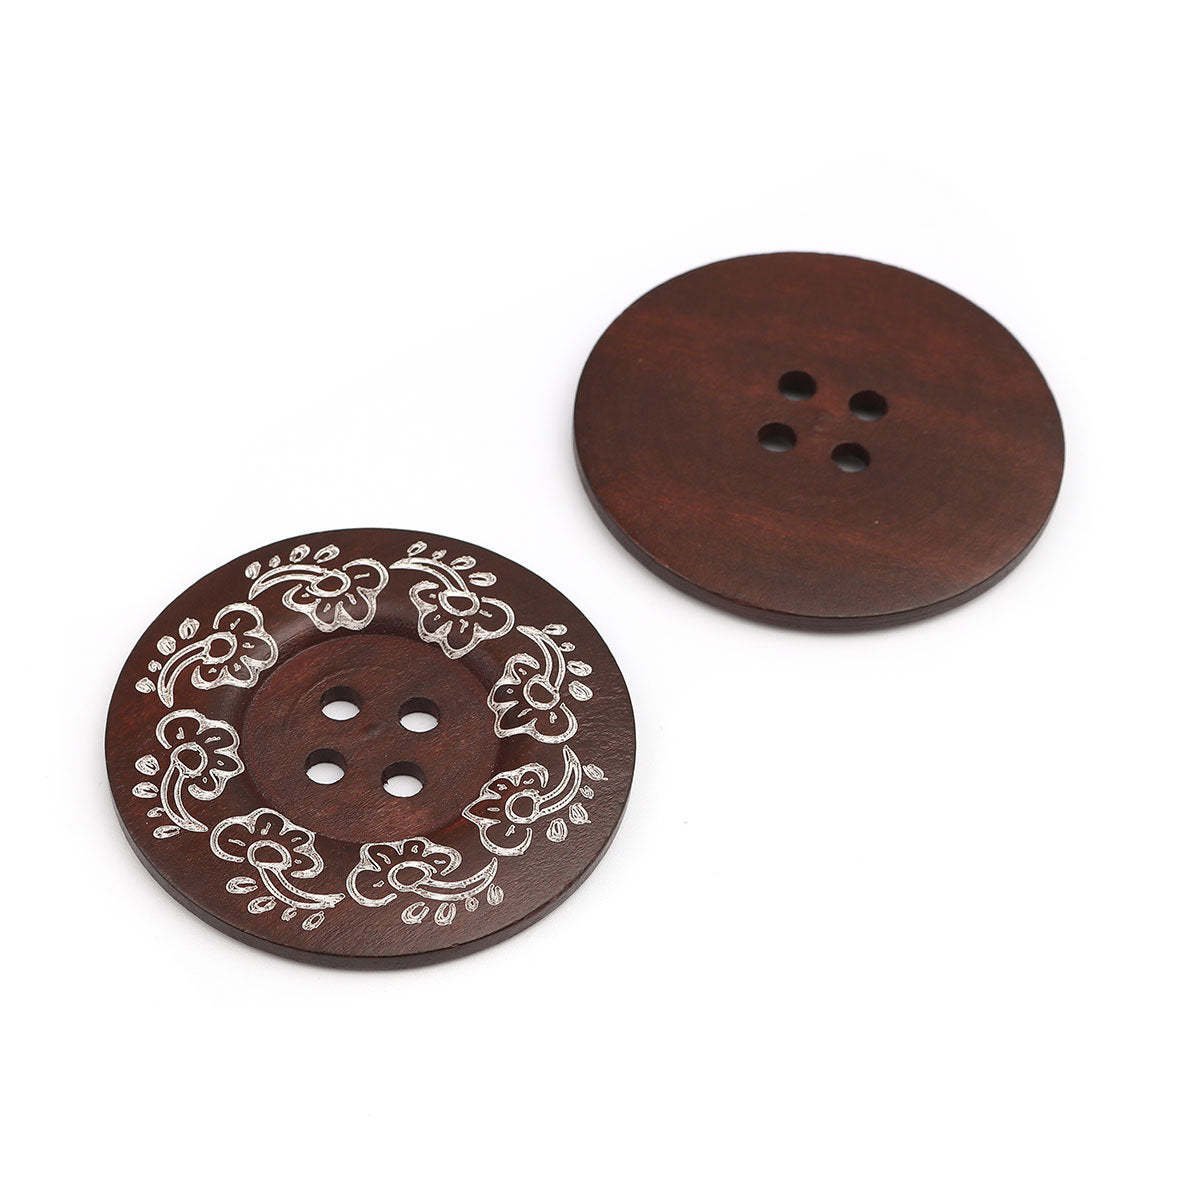 Extra Large Brown Wooden Buttons - Flower Design - 2 3/8 inch - 6cm - Wood Buttons